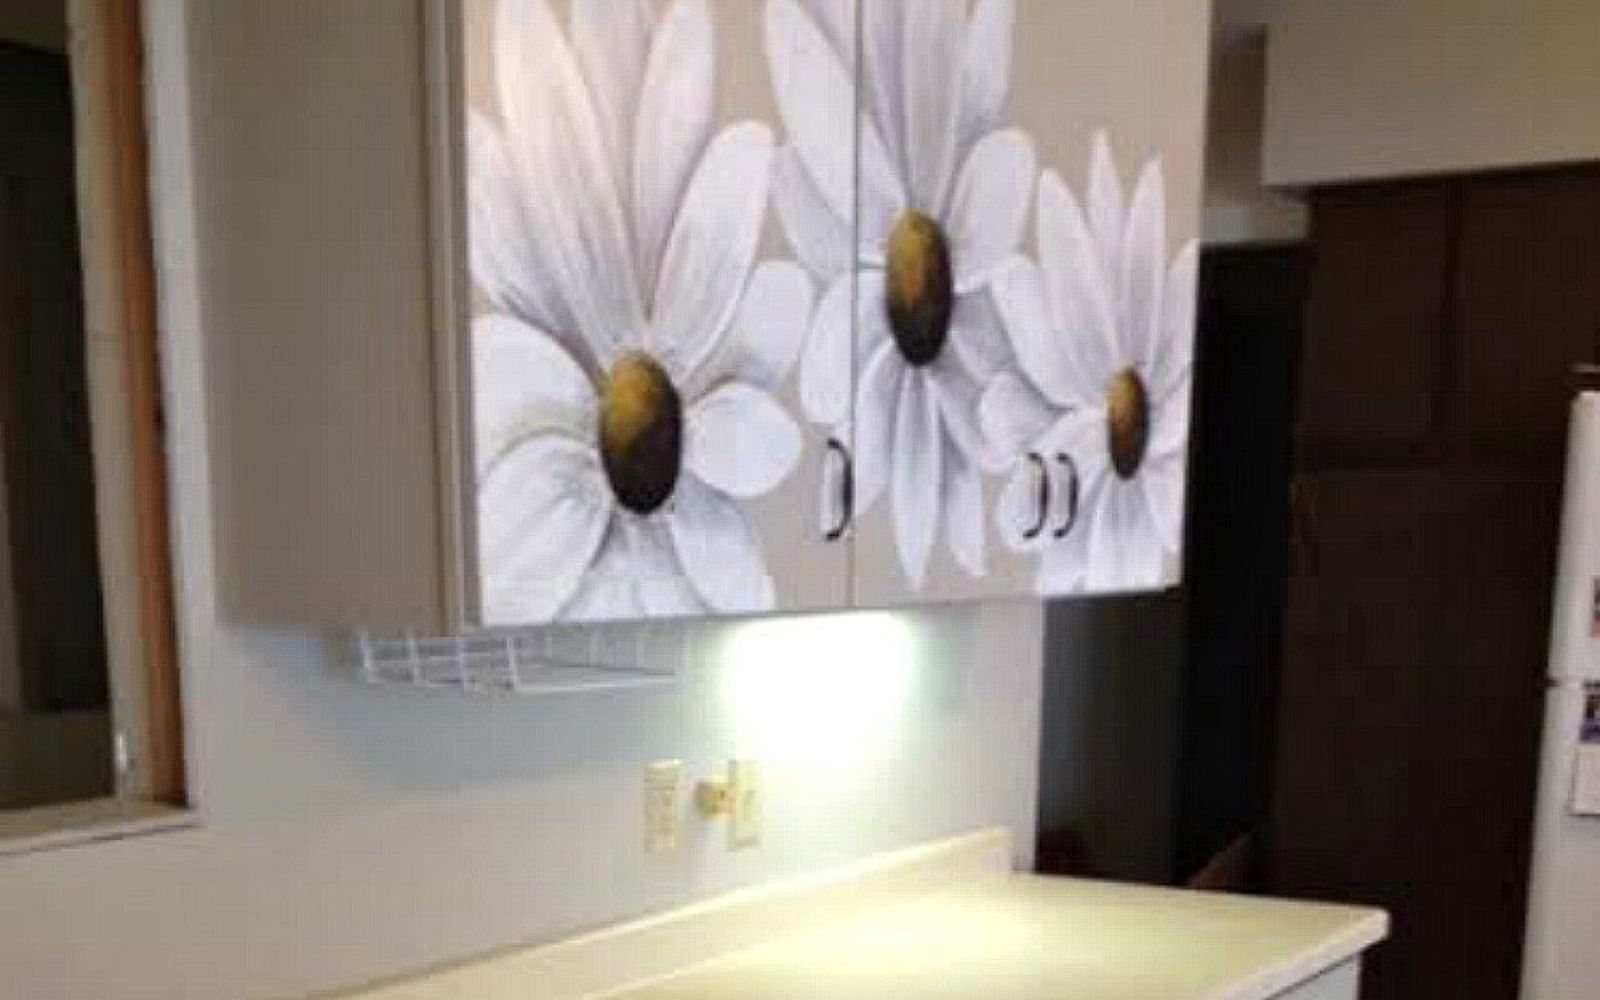 s transform your kitchen cabinets without paint 11 ideas , kitchen cabinets, kitchen design, Add some art to your cabinets